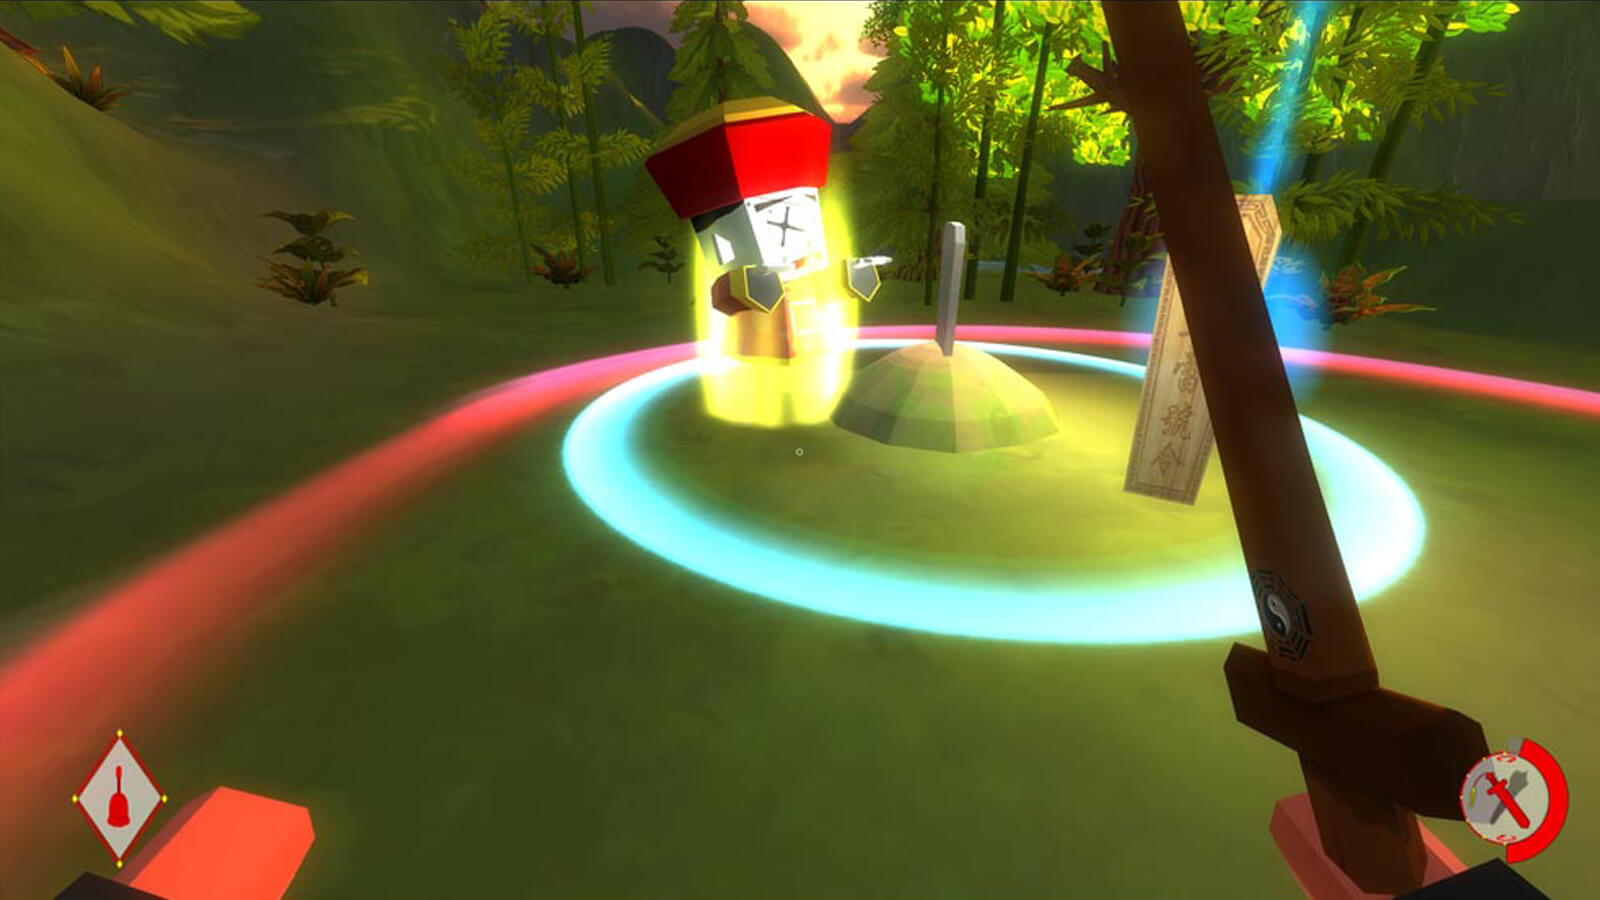 An enemy zombie in front of the player is on fire in a forested valley area